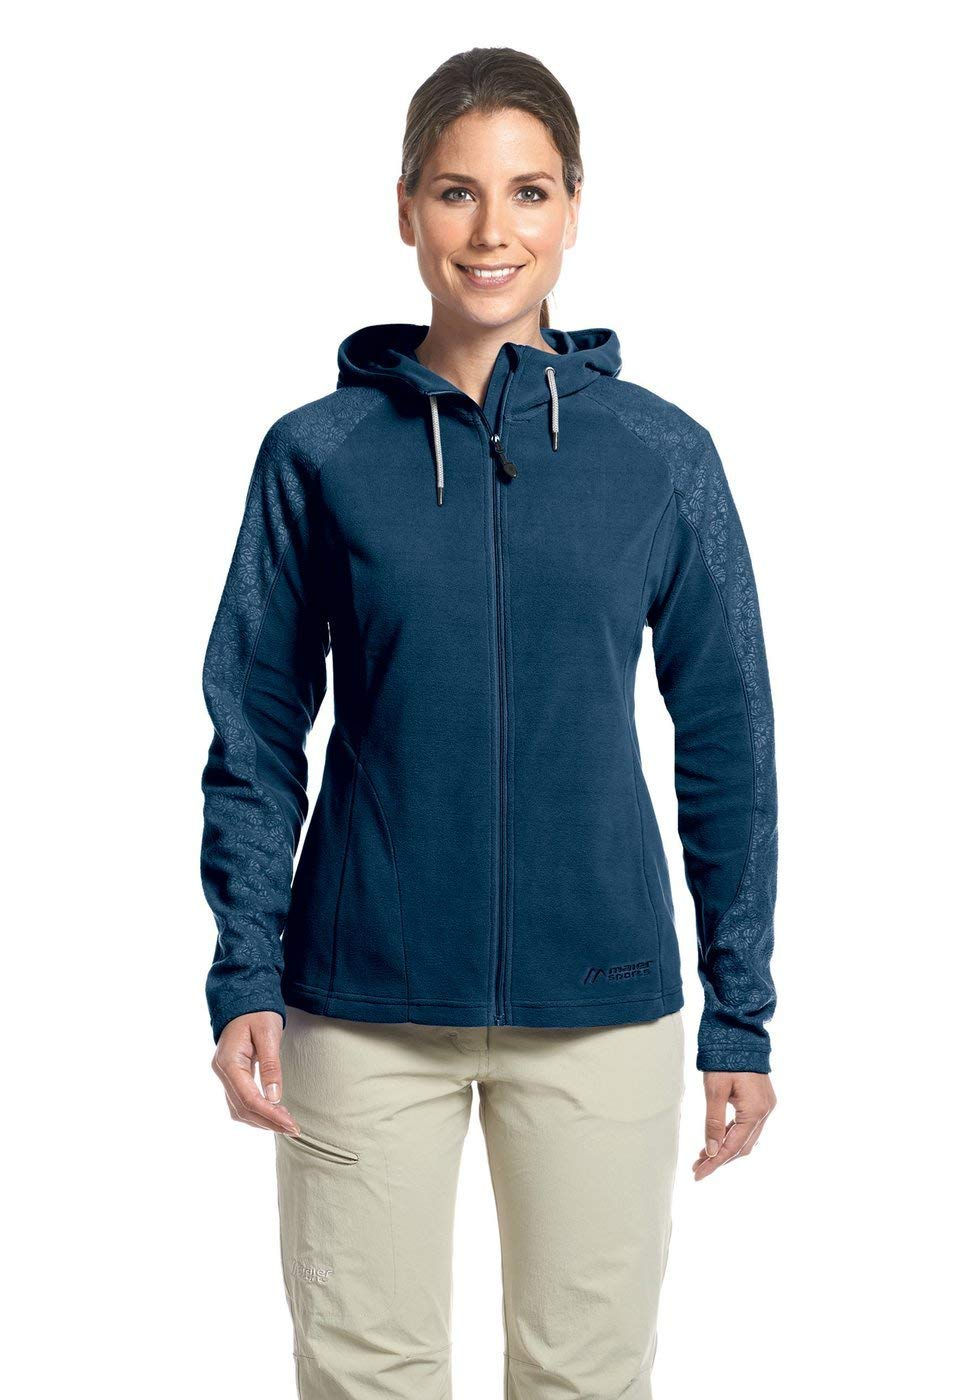 Maier Sports Damen Fleecejacke Quadra - aviator - 40